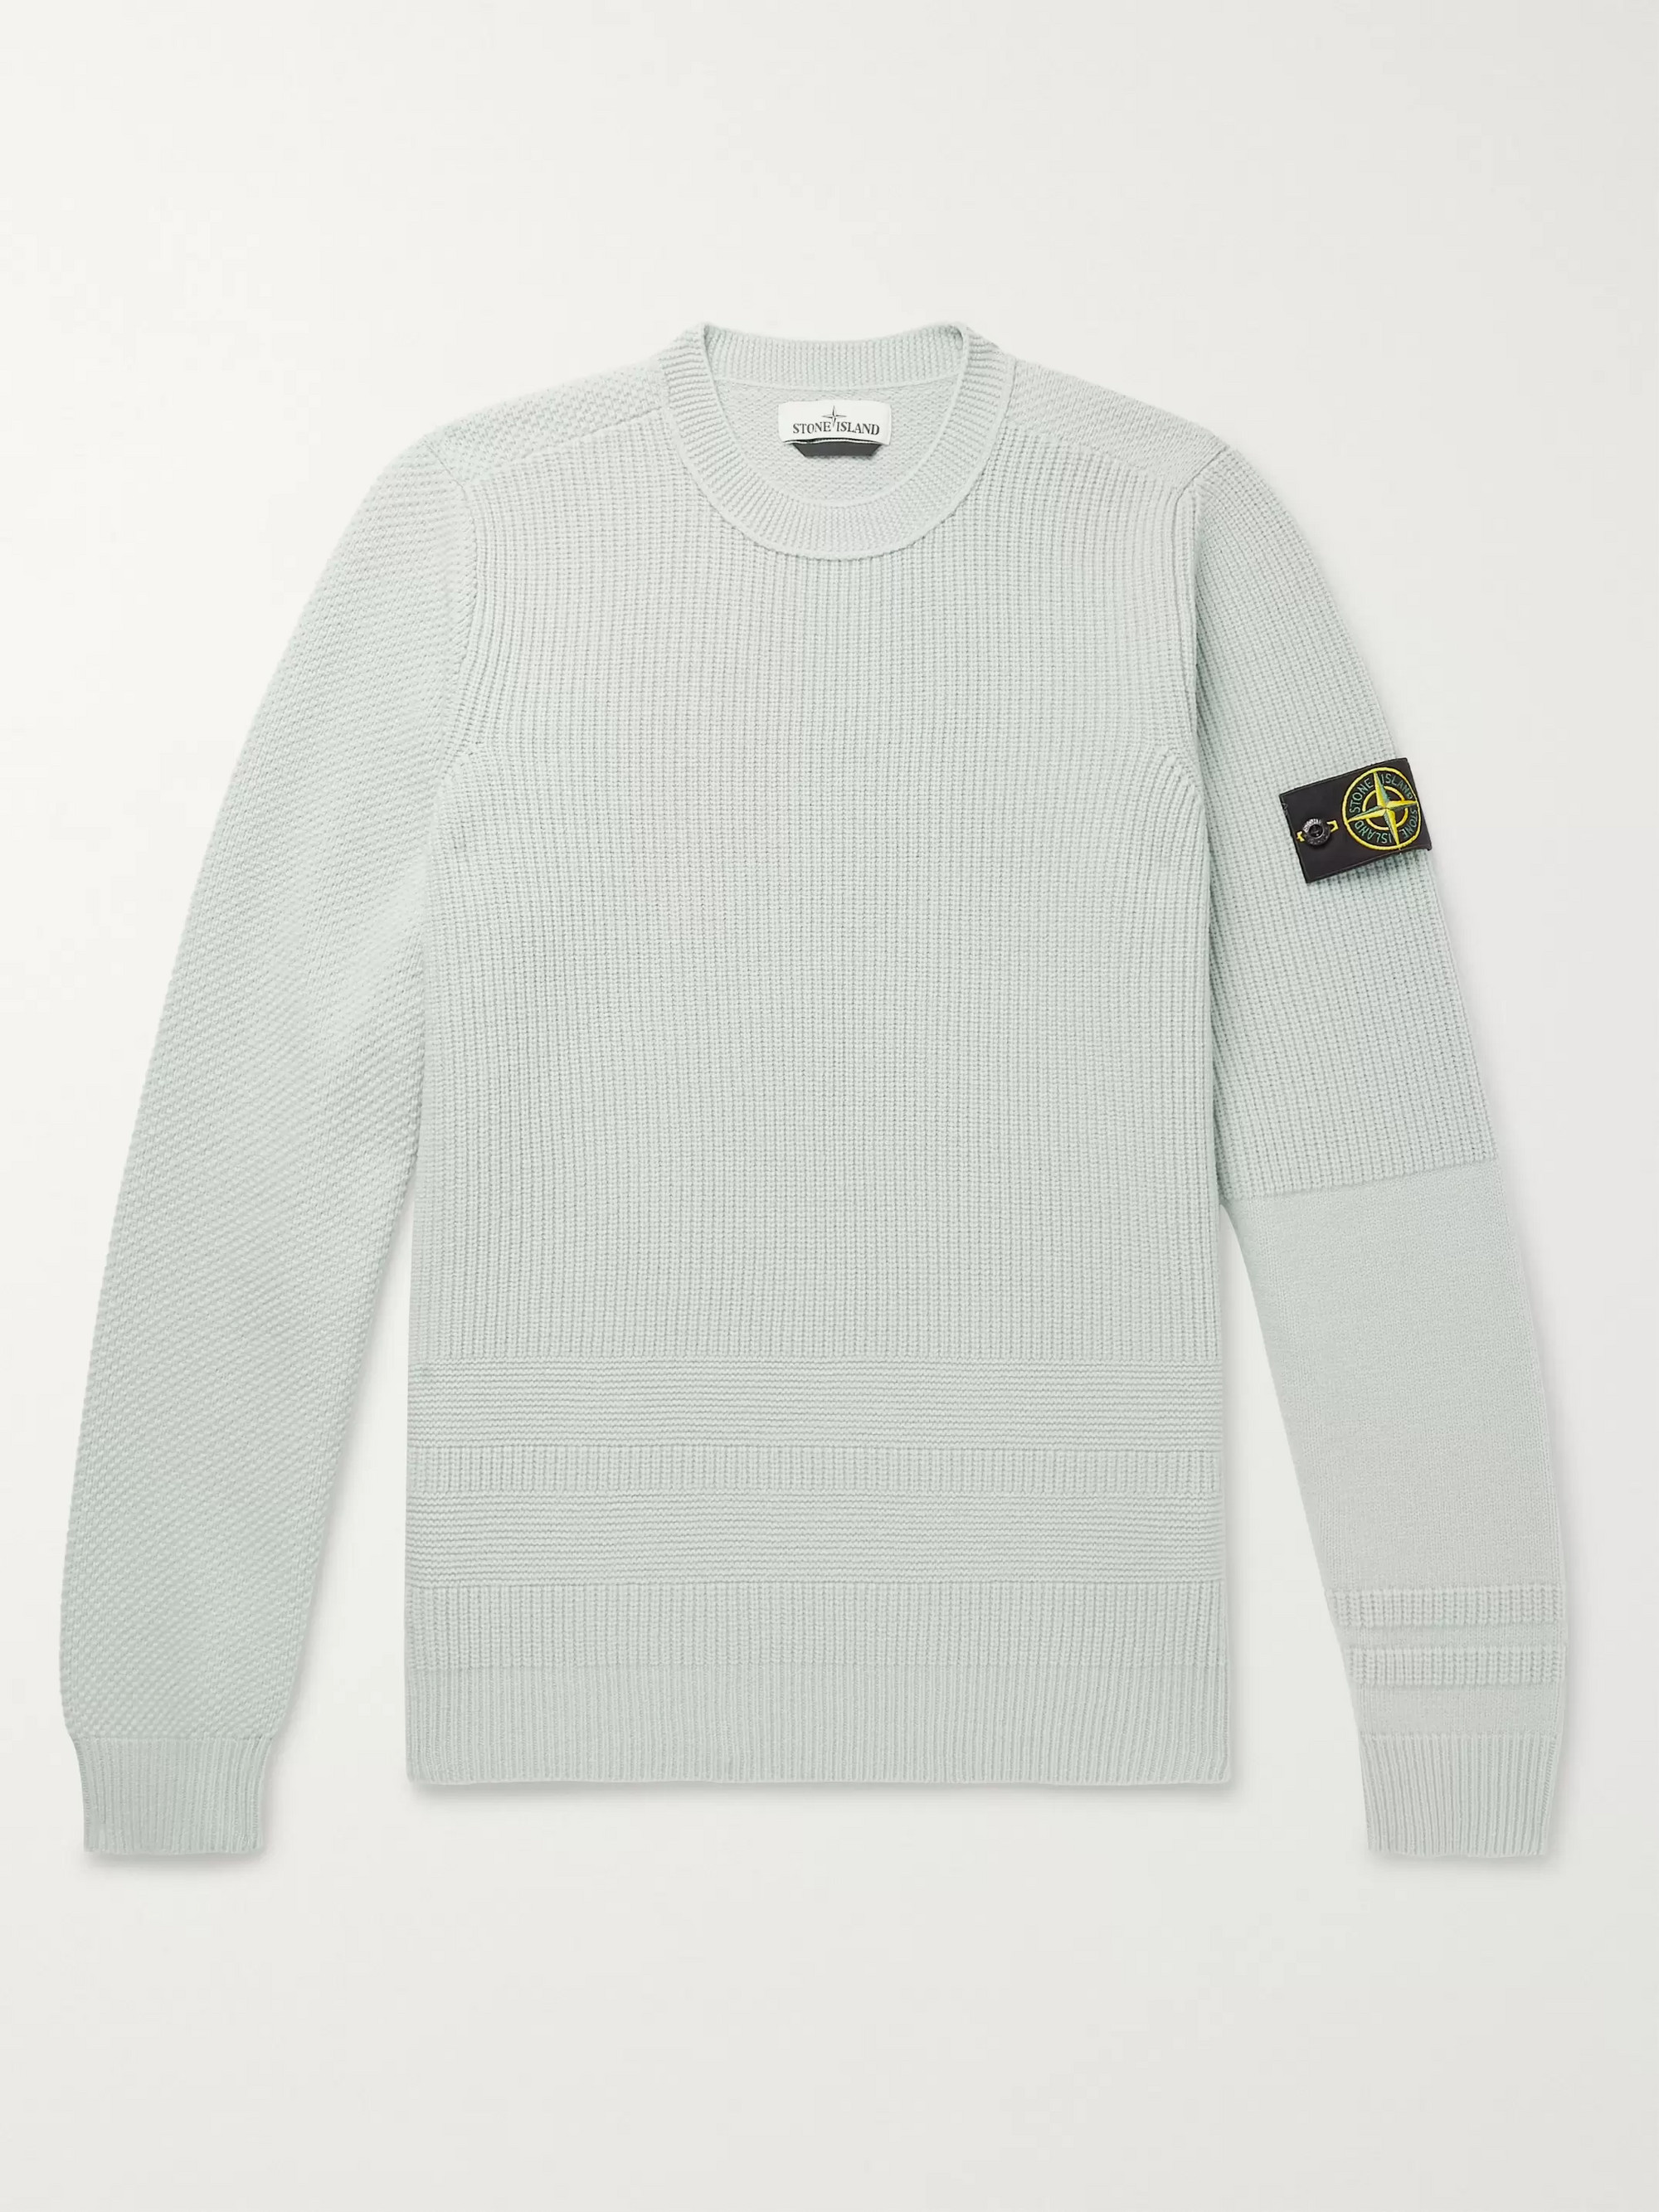 83ea7c7297006c Stone Island Logo-Appliquéd Wool-Blend Sweater